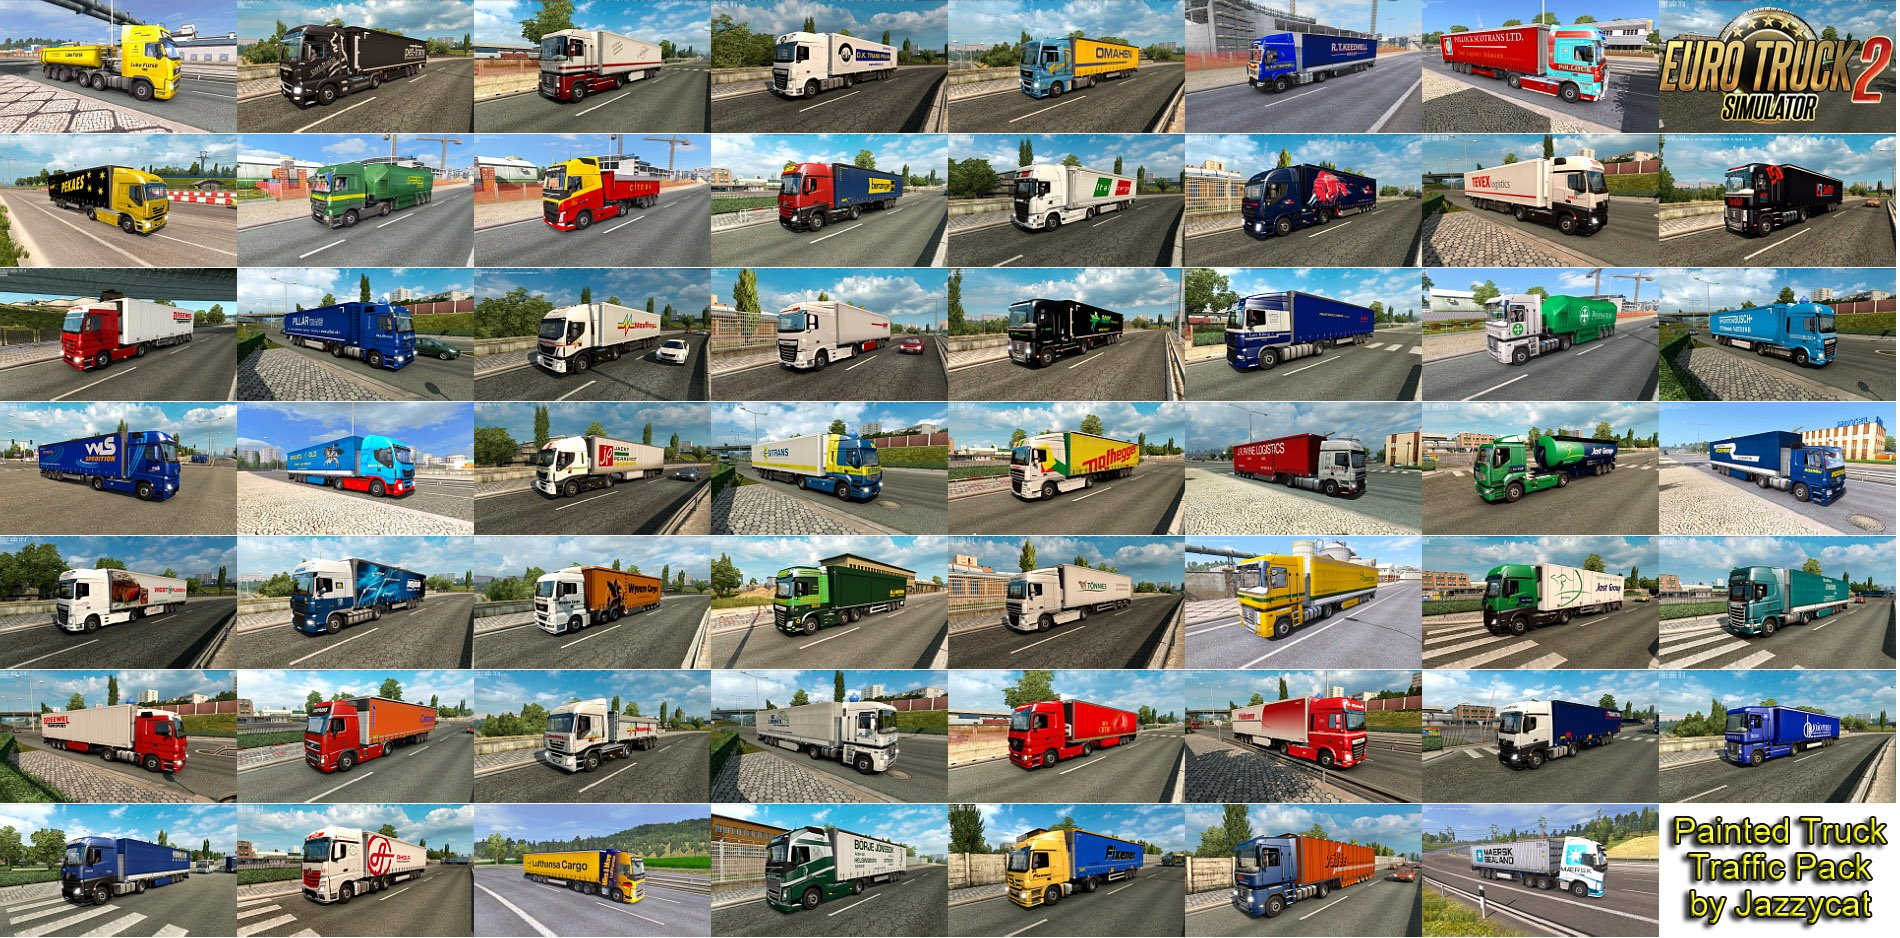 Painted Truck Traffic Pack v5.6 by Jazzycat